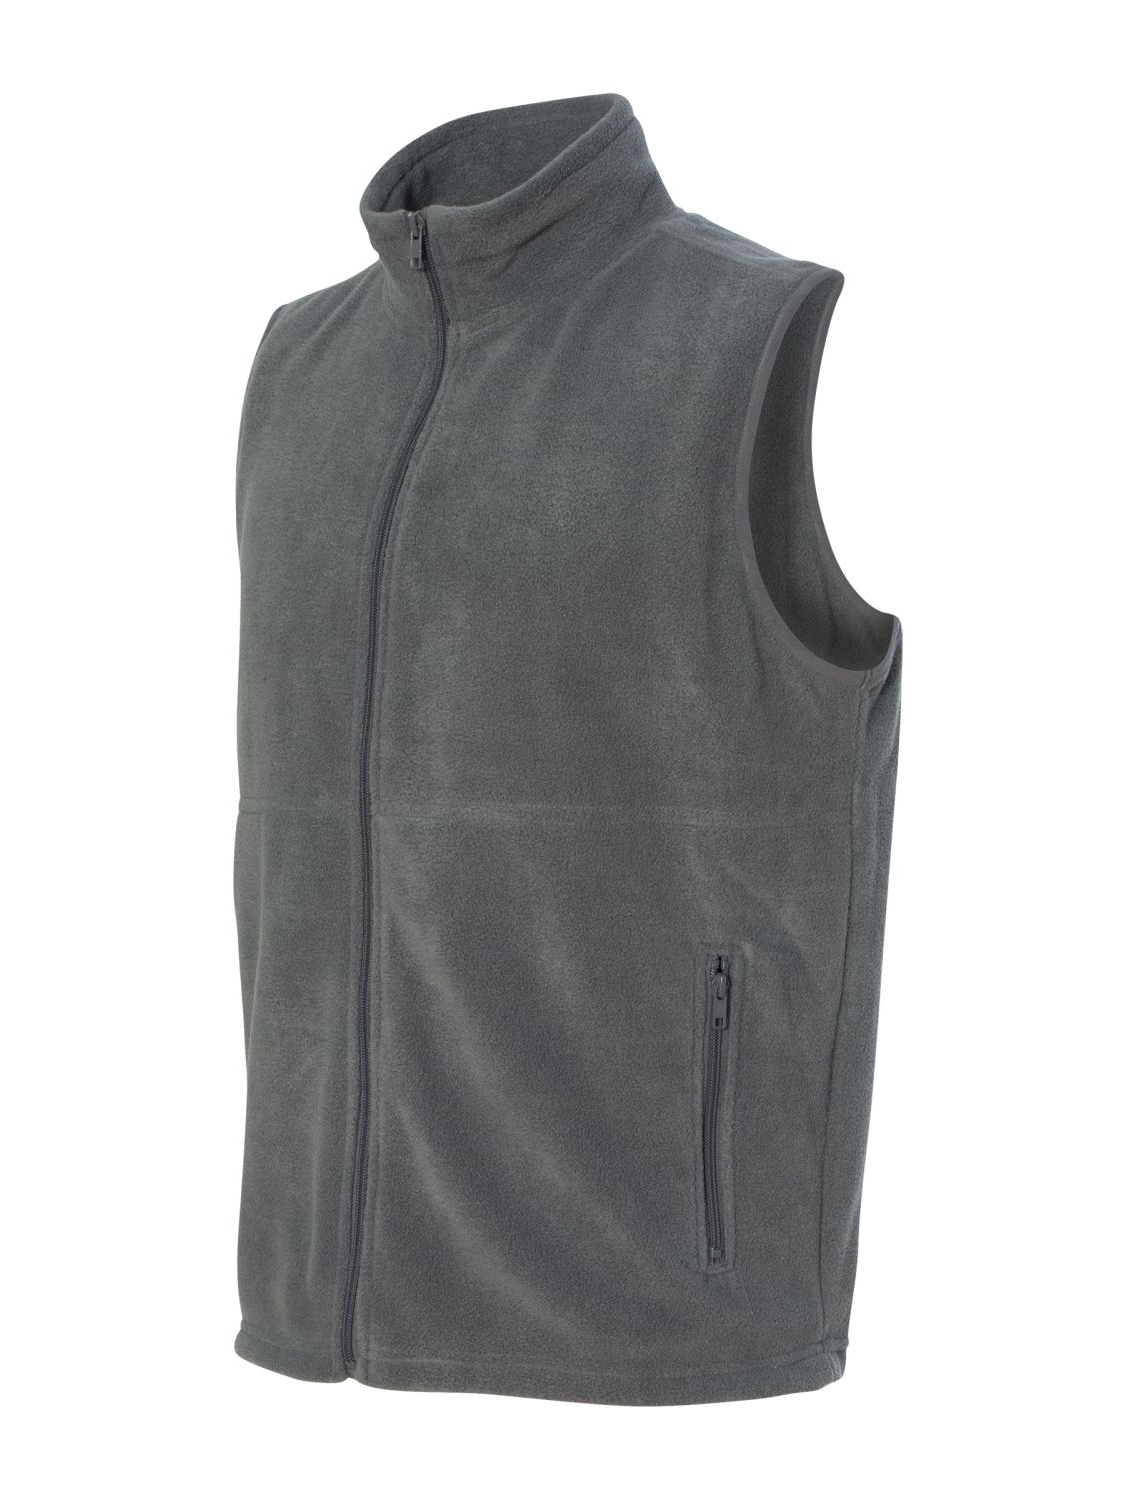 Colorado Clothing 9631 New S-6XL Sport Fleece Full-Zip Vest